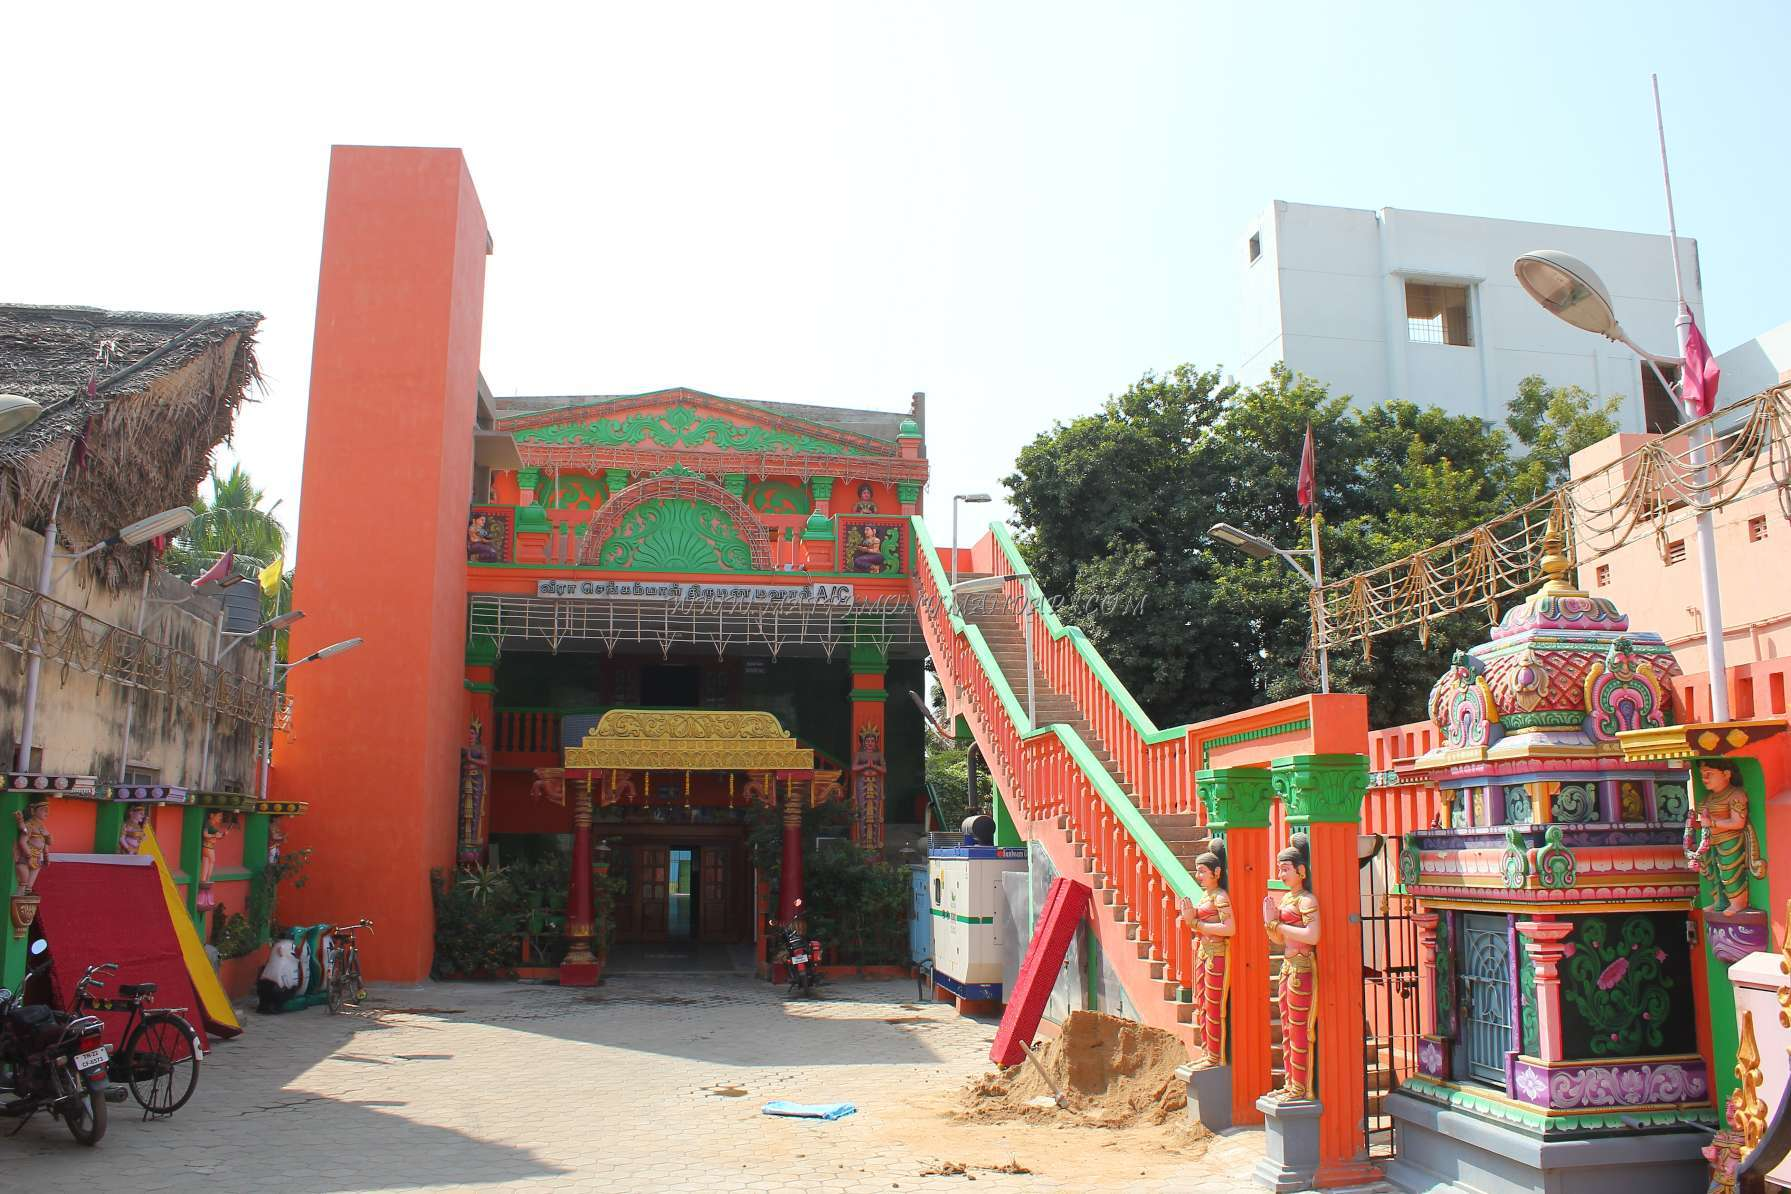 Find the availability of the Veera Sengammal Thirumana Mahal (A/C) in Keelkattalai, Chennai and avail special offers